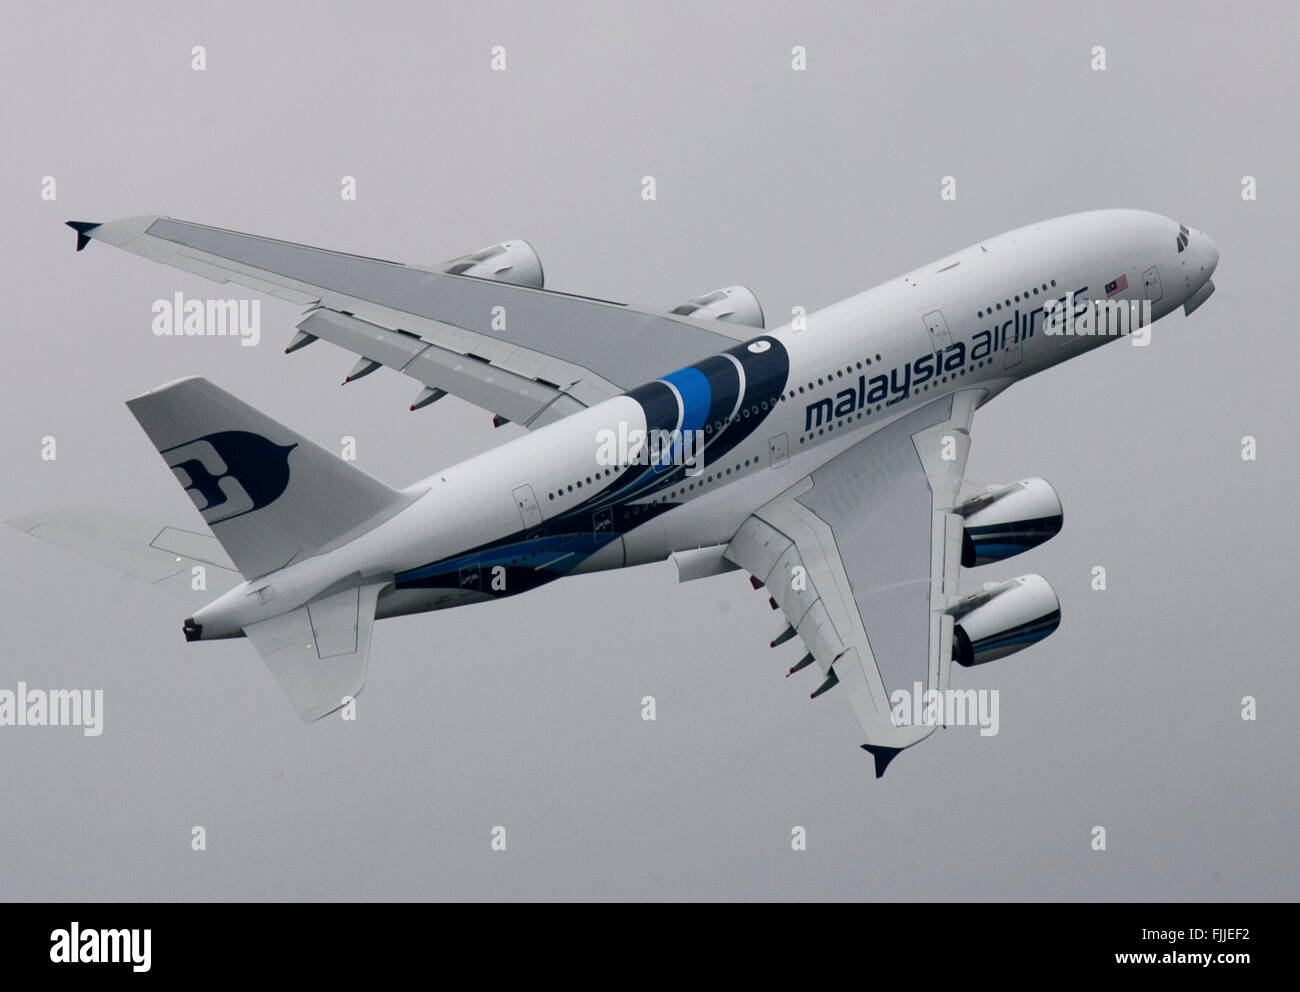 Airbus A380 Airliner Malaysia Airlines - Stock Image